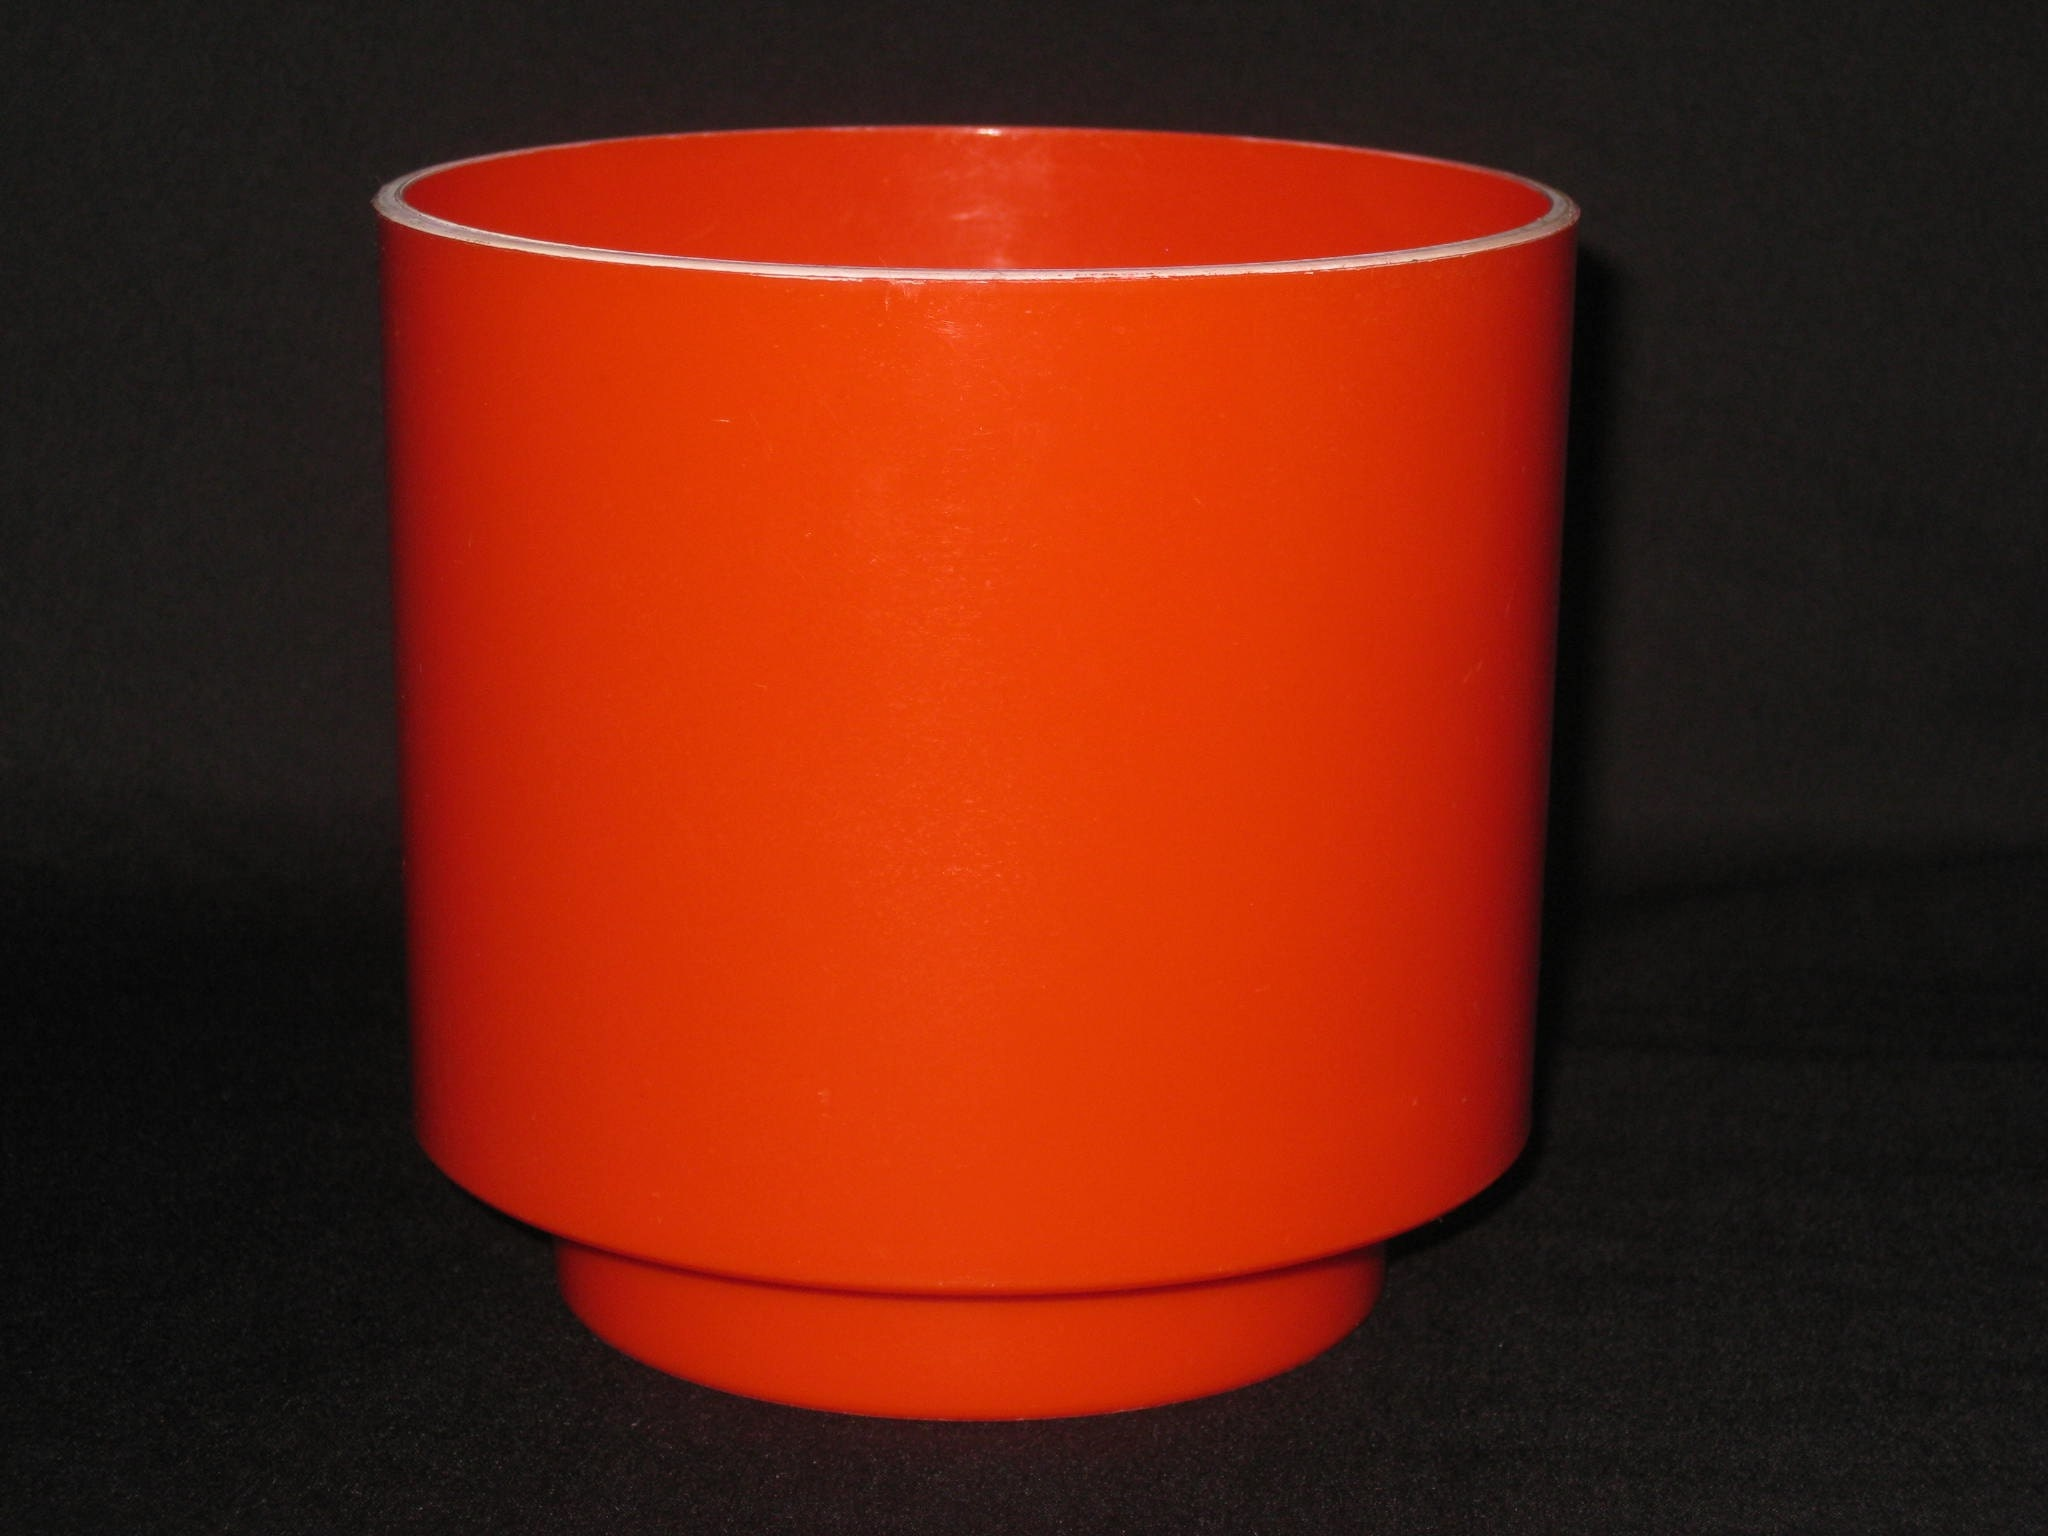 Retro Orange 70 S Flower Pot Planter 1970s Mod Hard